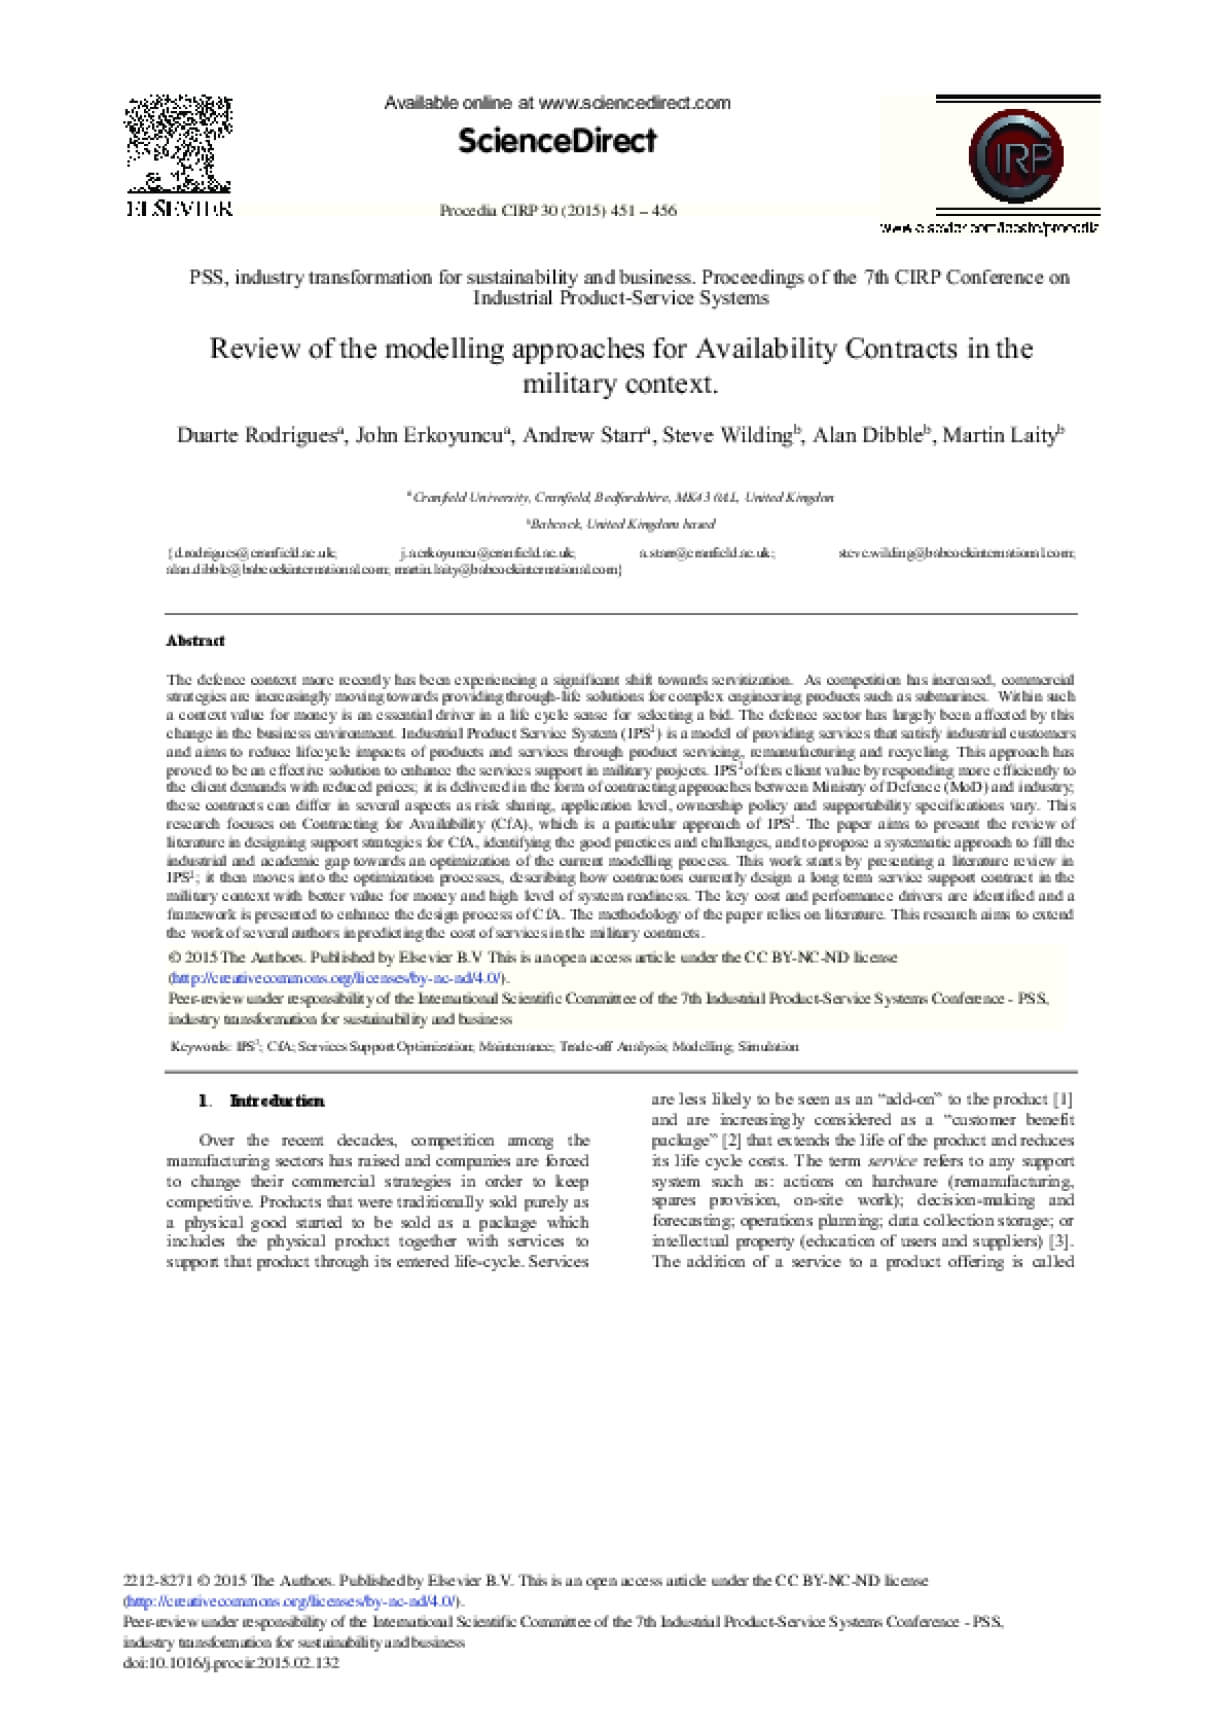 Review Of The Modelling Approaches For Availability Contracts In The Military Context